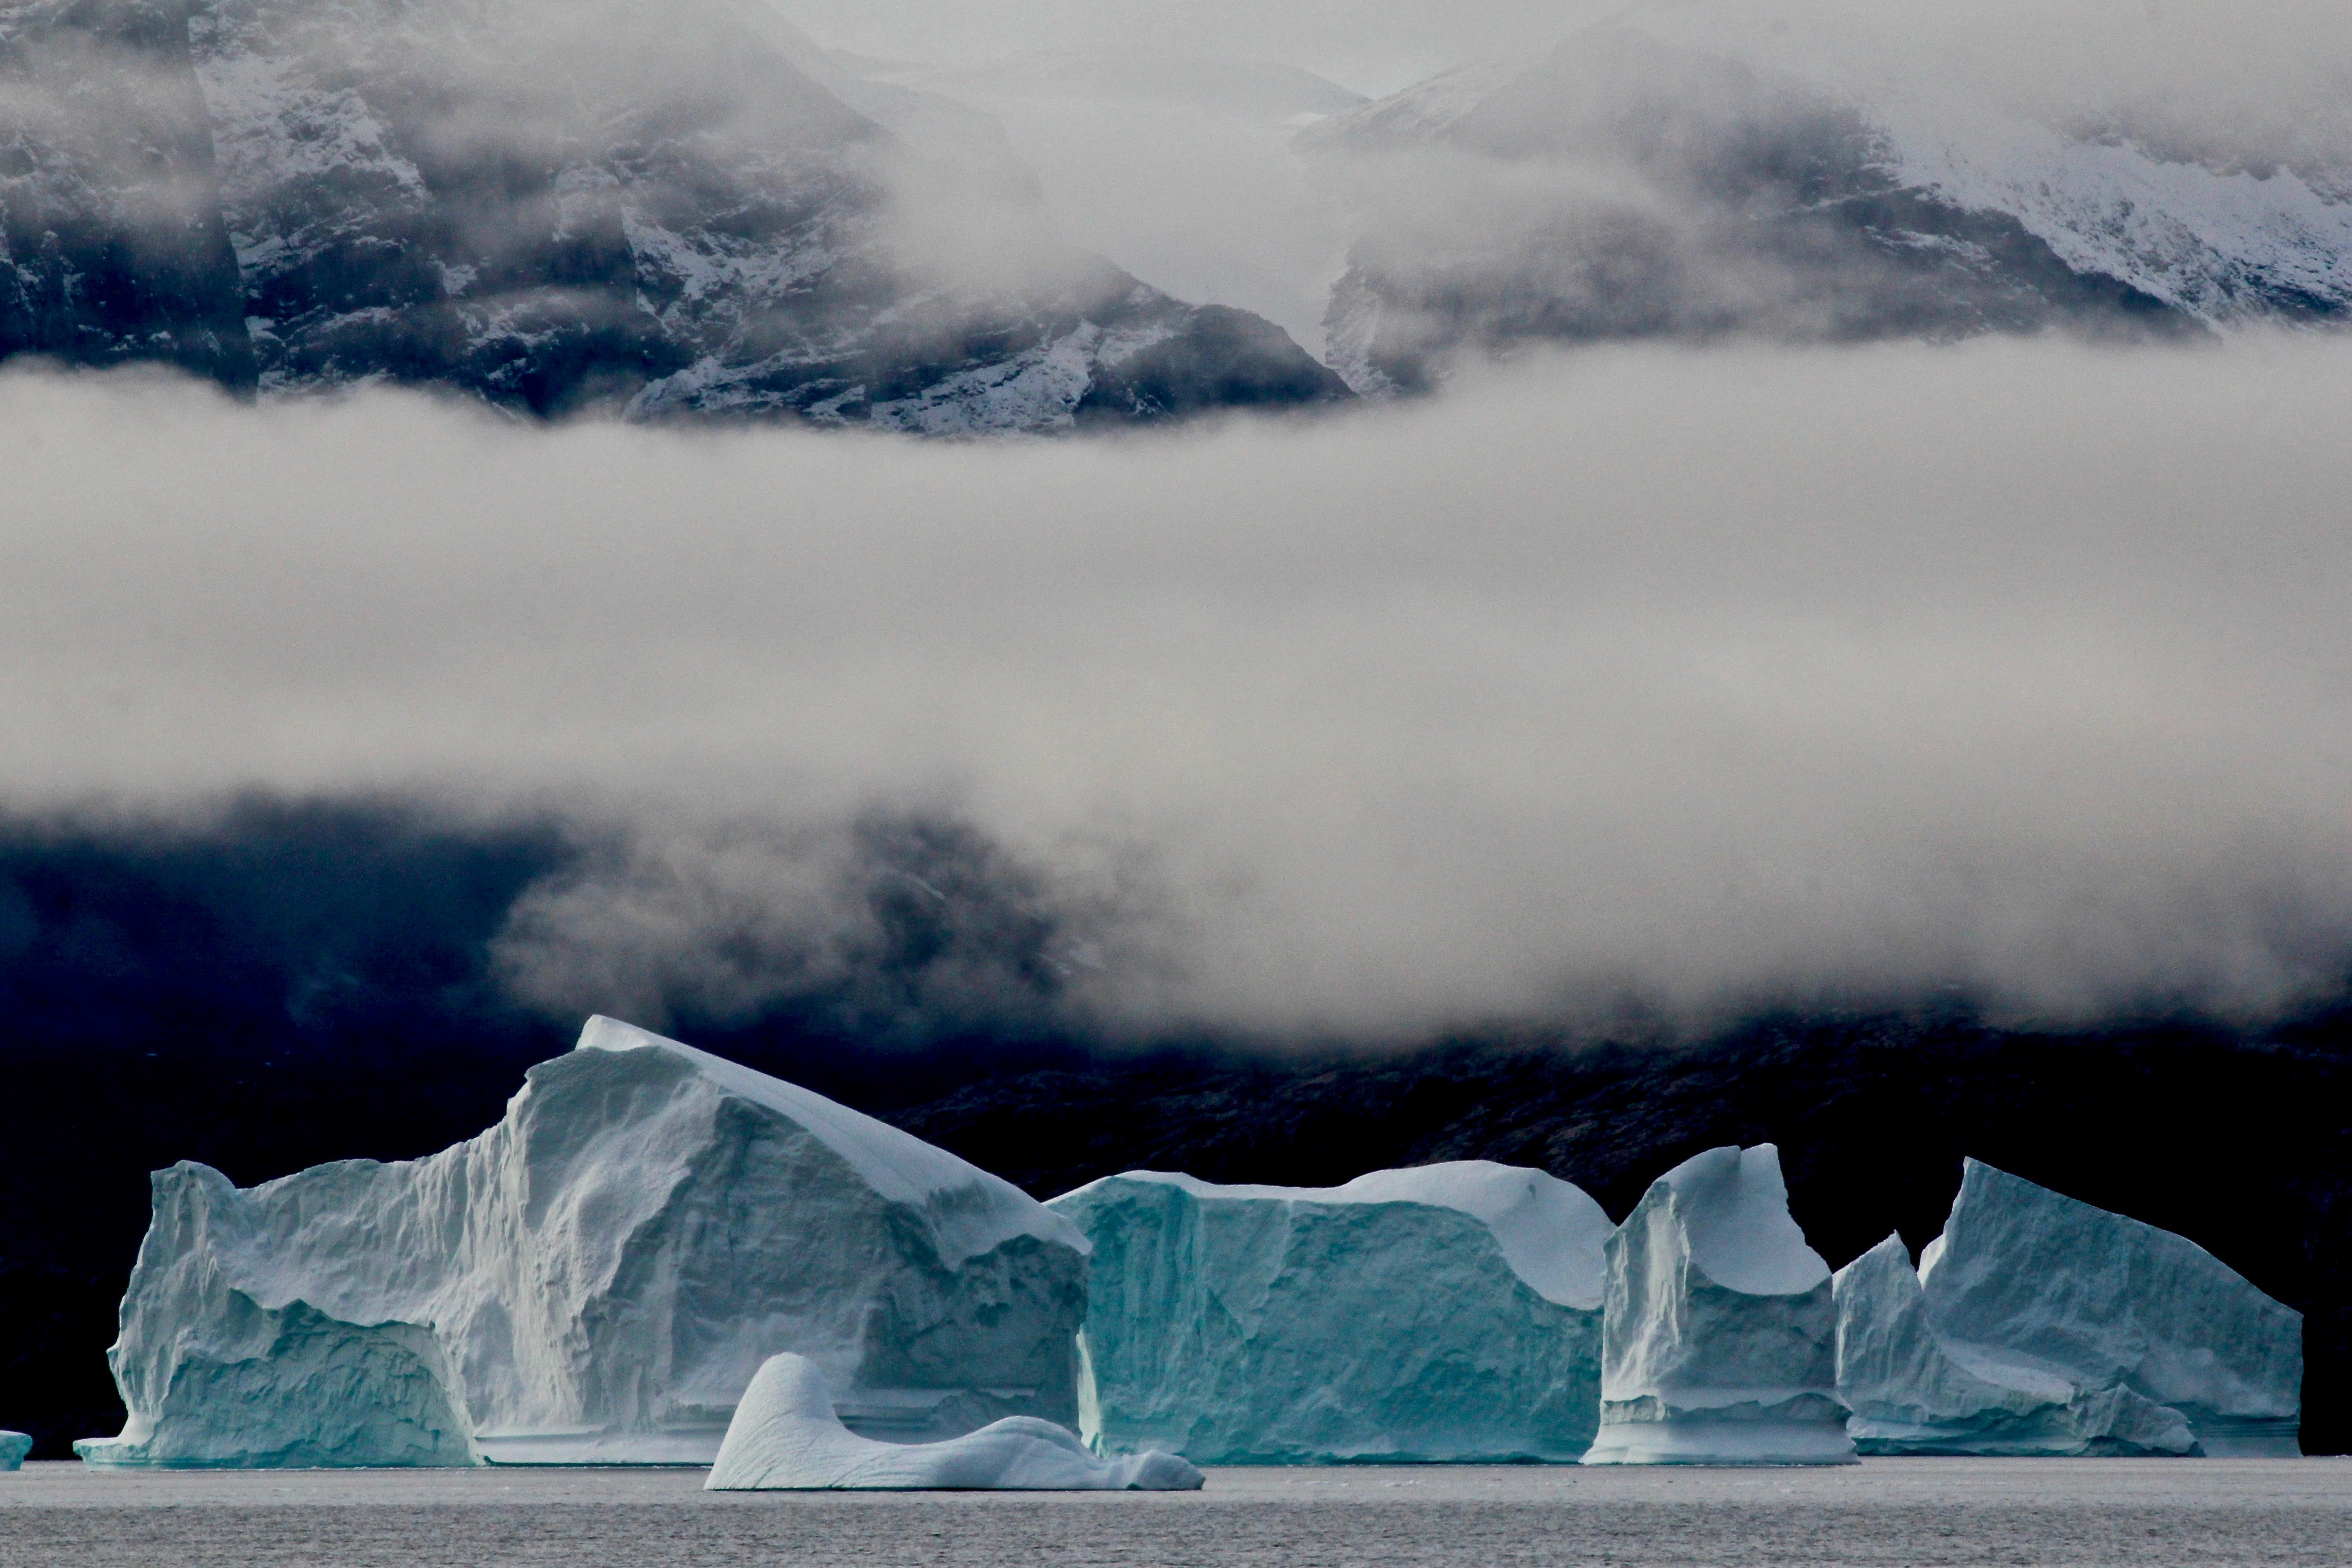 ice burn under grace cloud surrounded by body of water